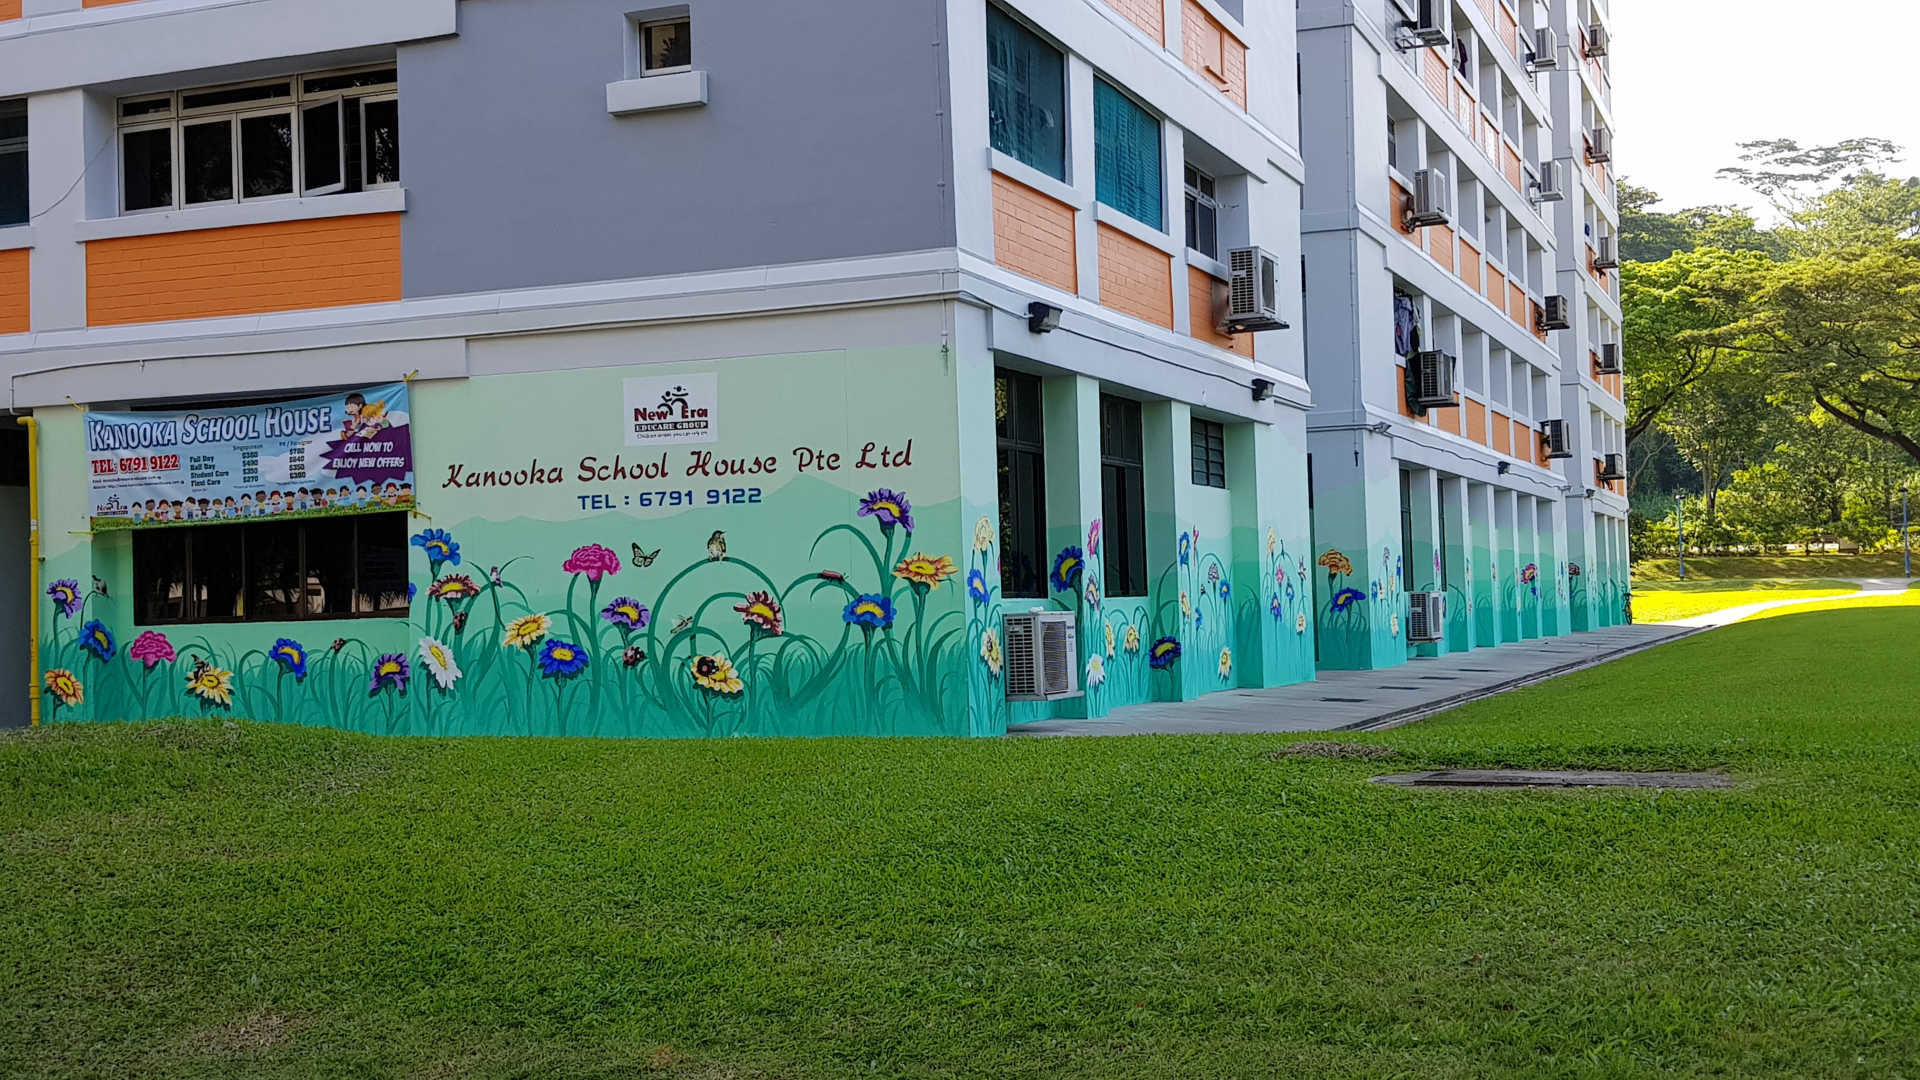 853 Jurong West Street 81, District 22 Singapore